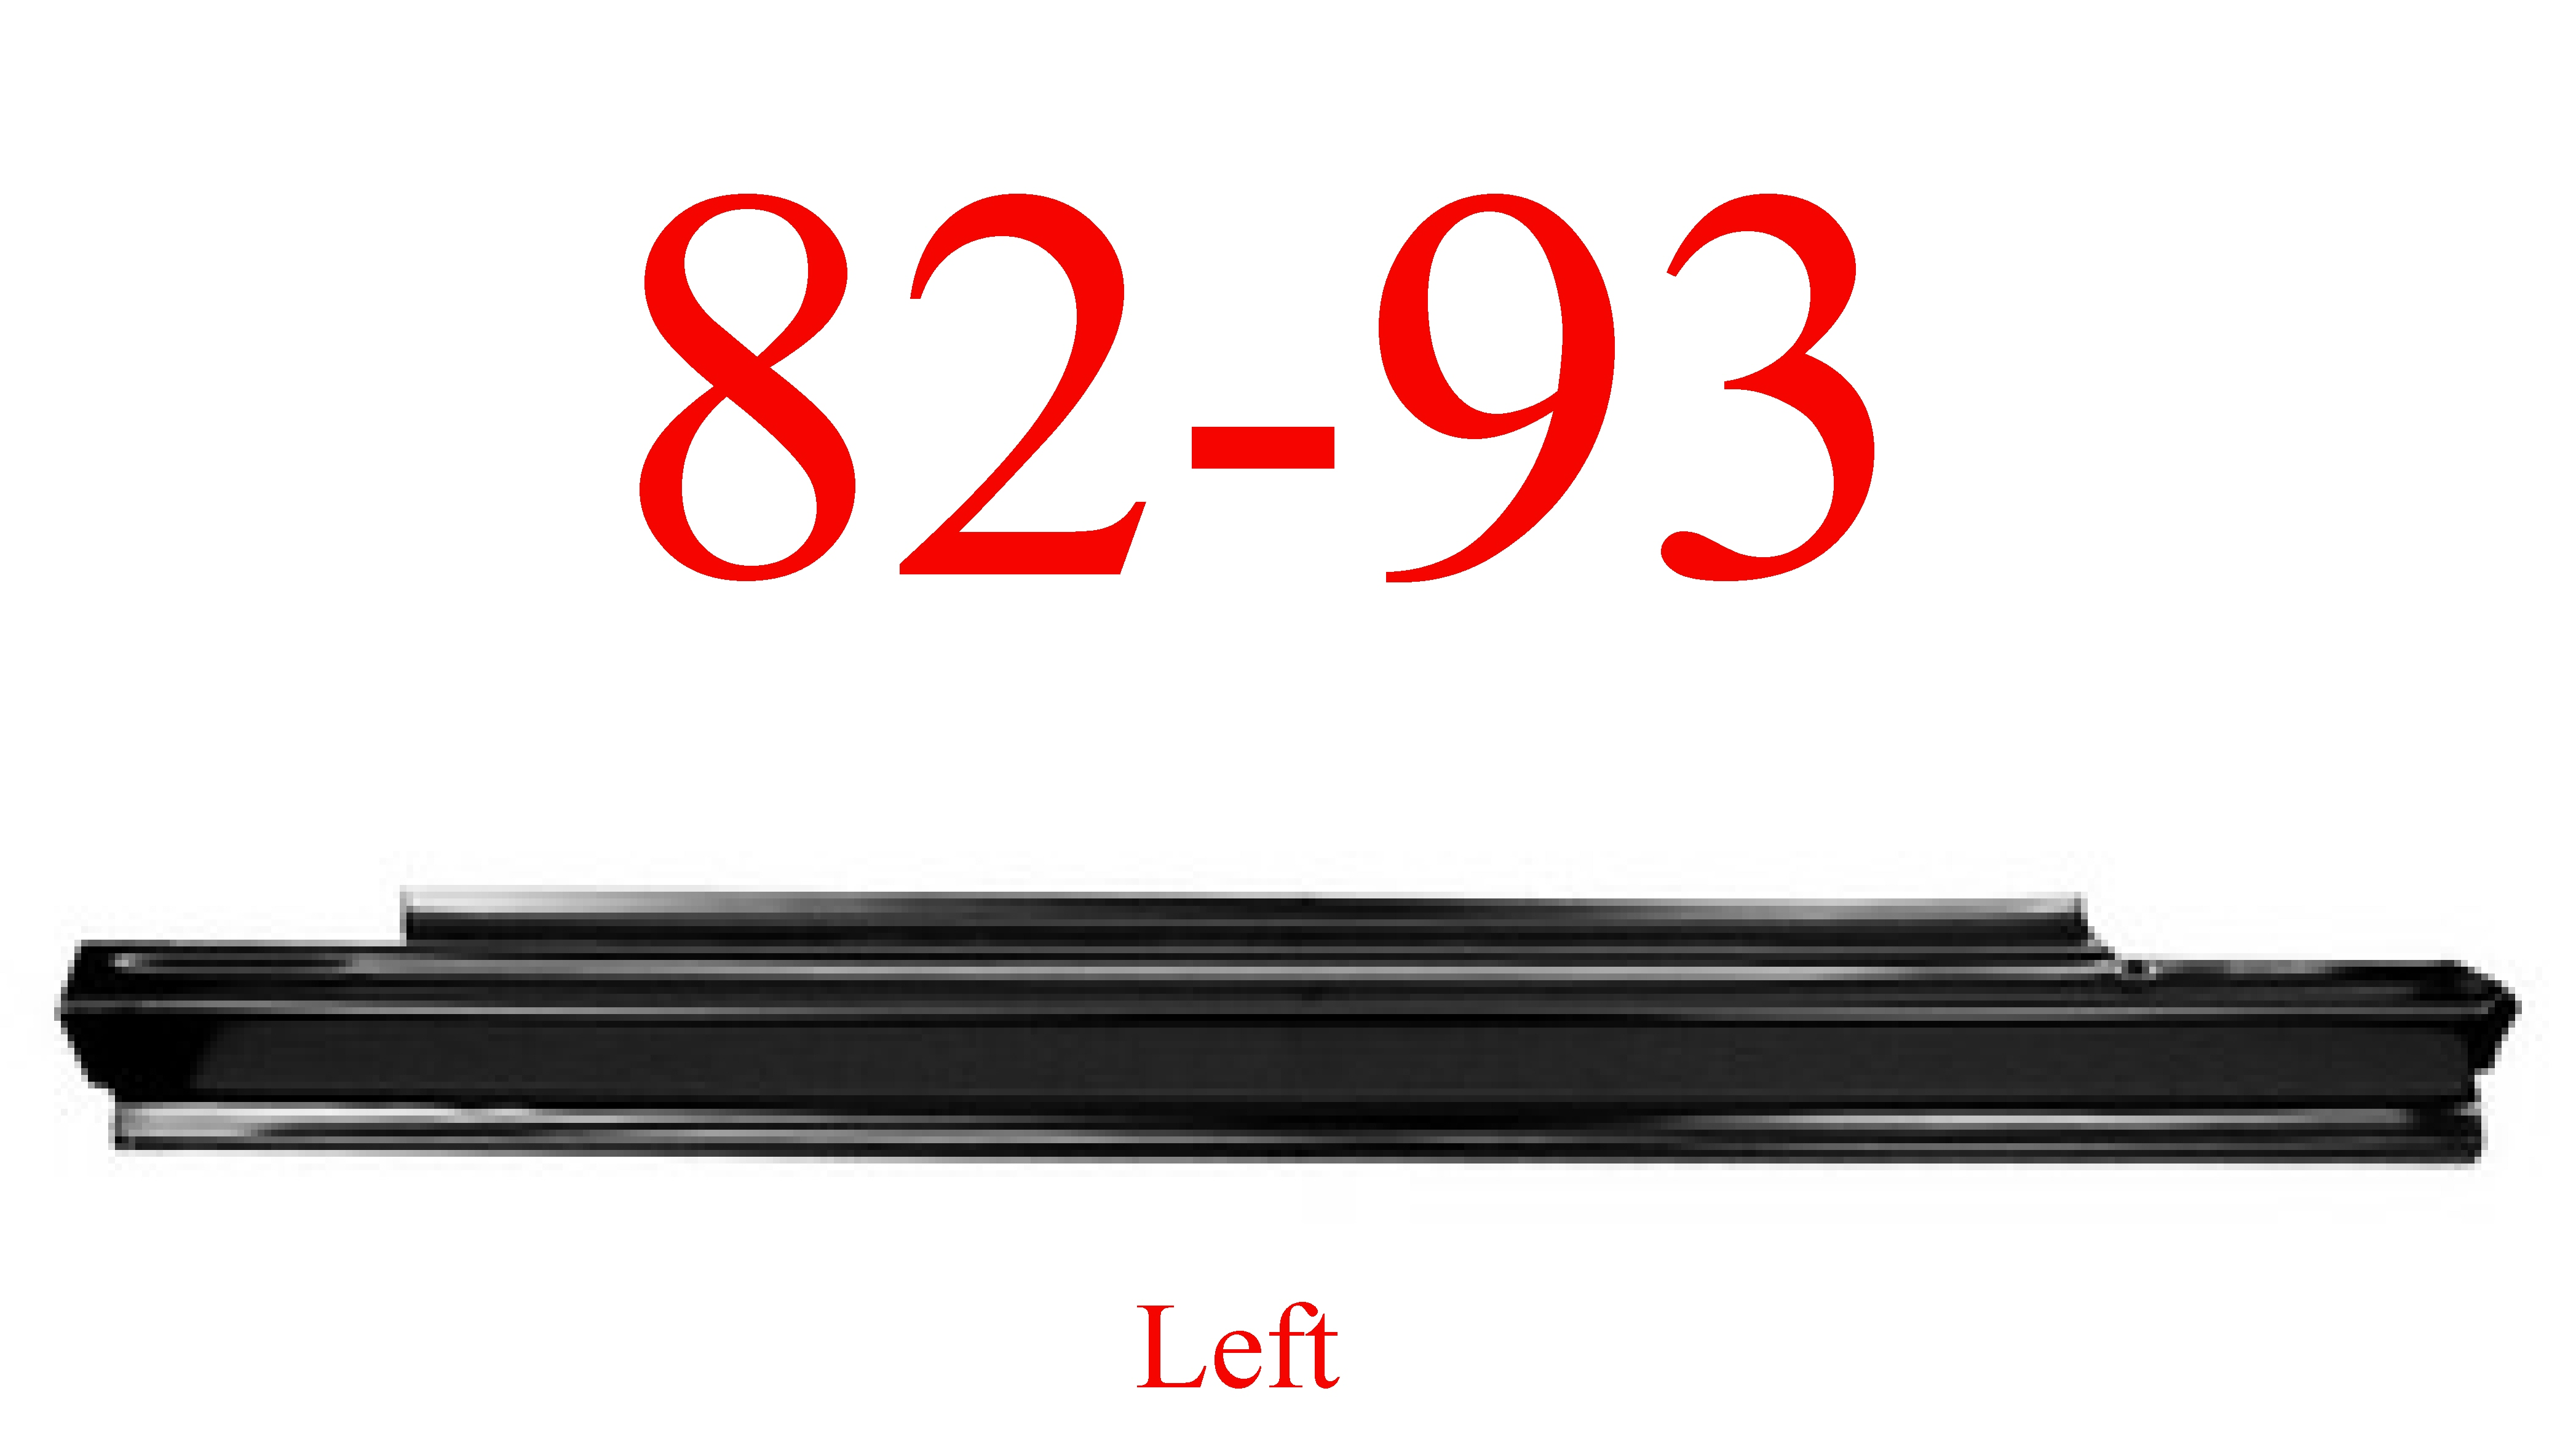 82-93 Chevy S10 Left Slip-On Rocker Panel